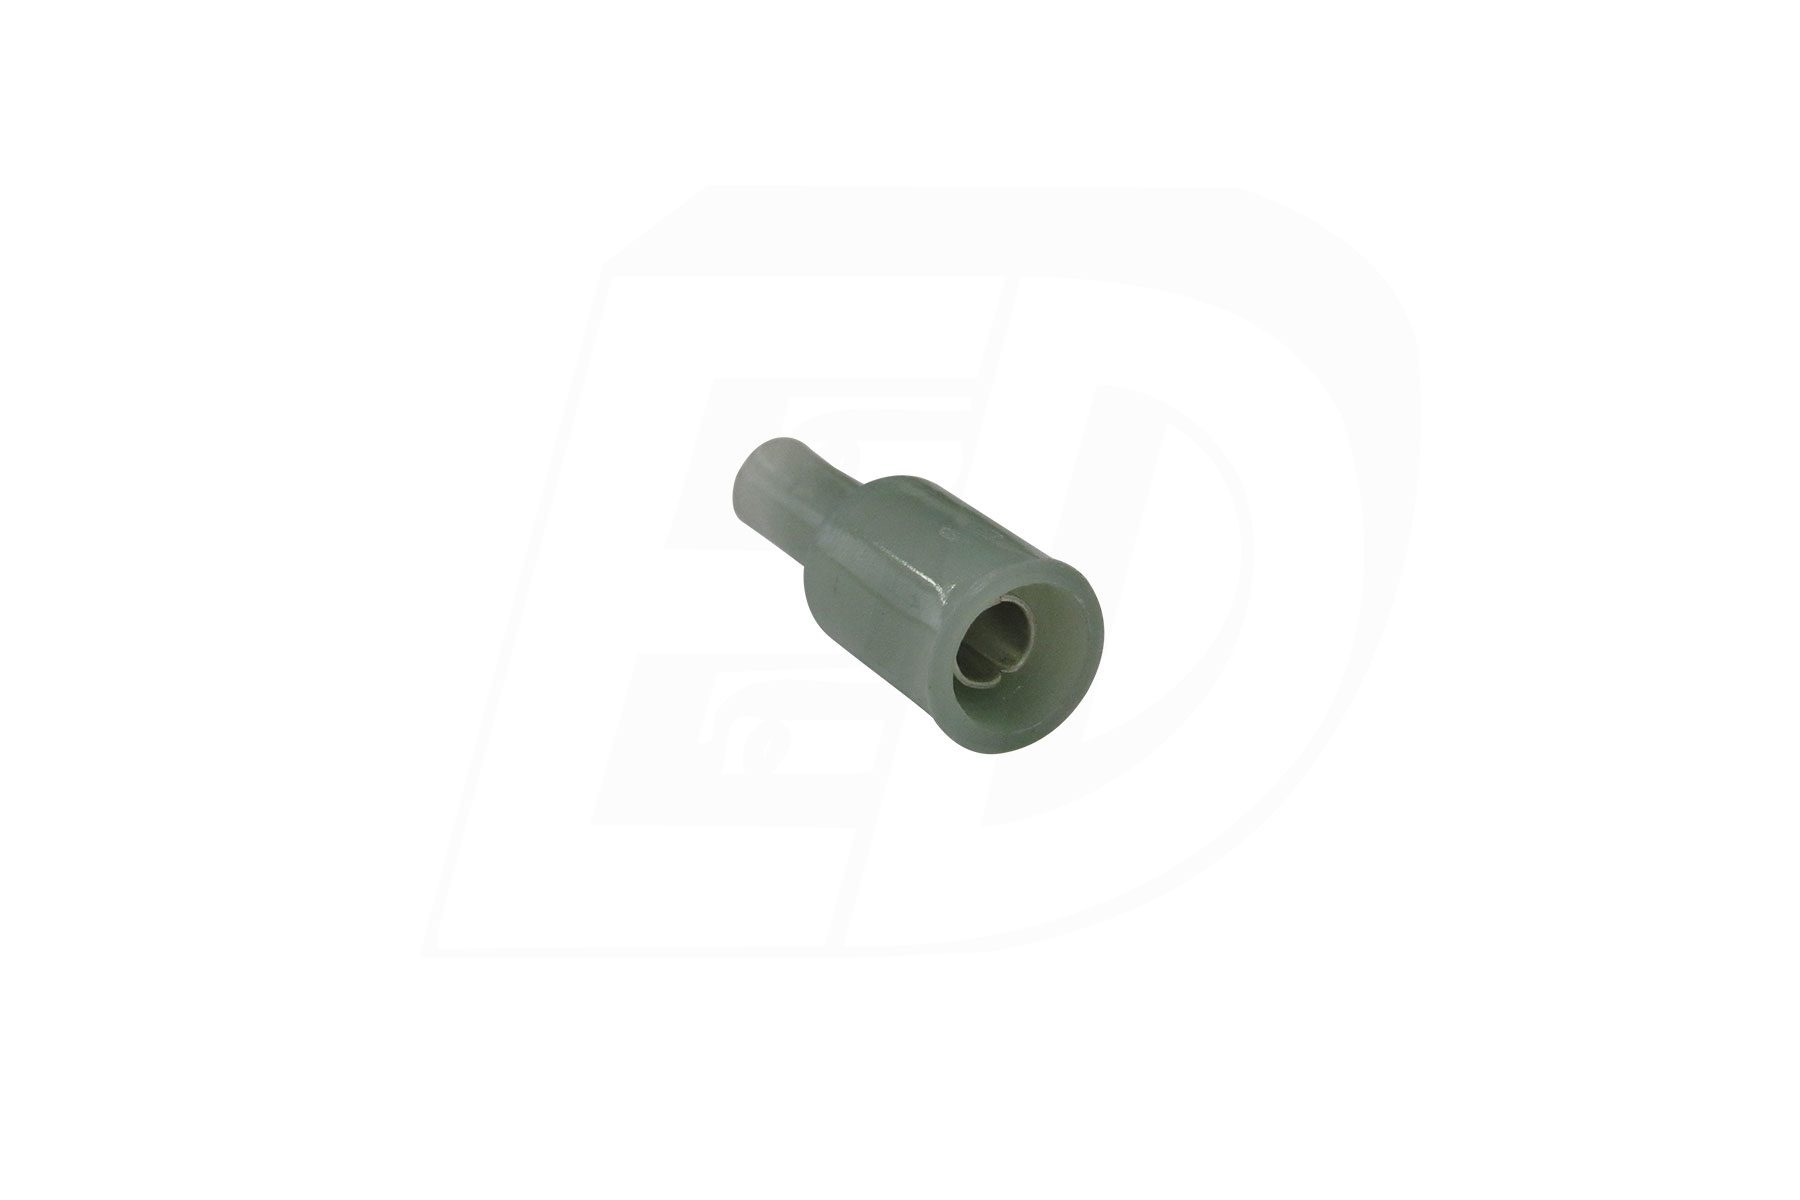 Butted Seam Vinyl Insulated Female Bullet Connectors 16 - 14 AWG